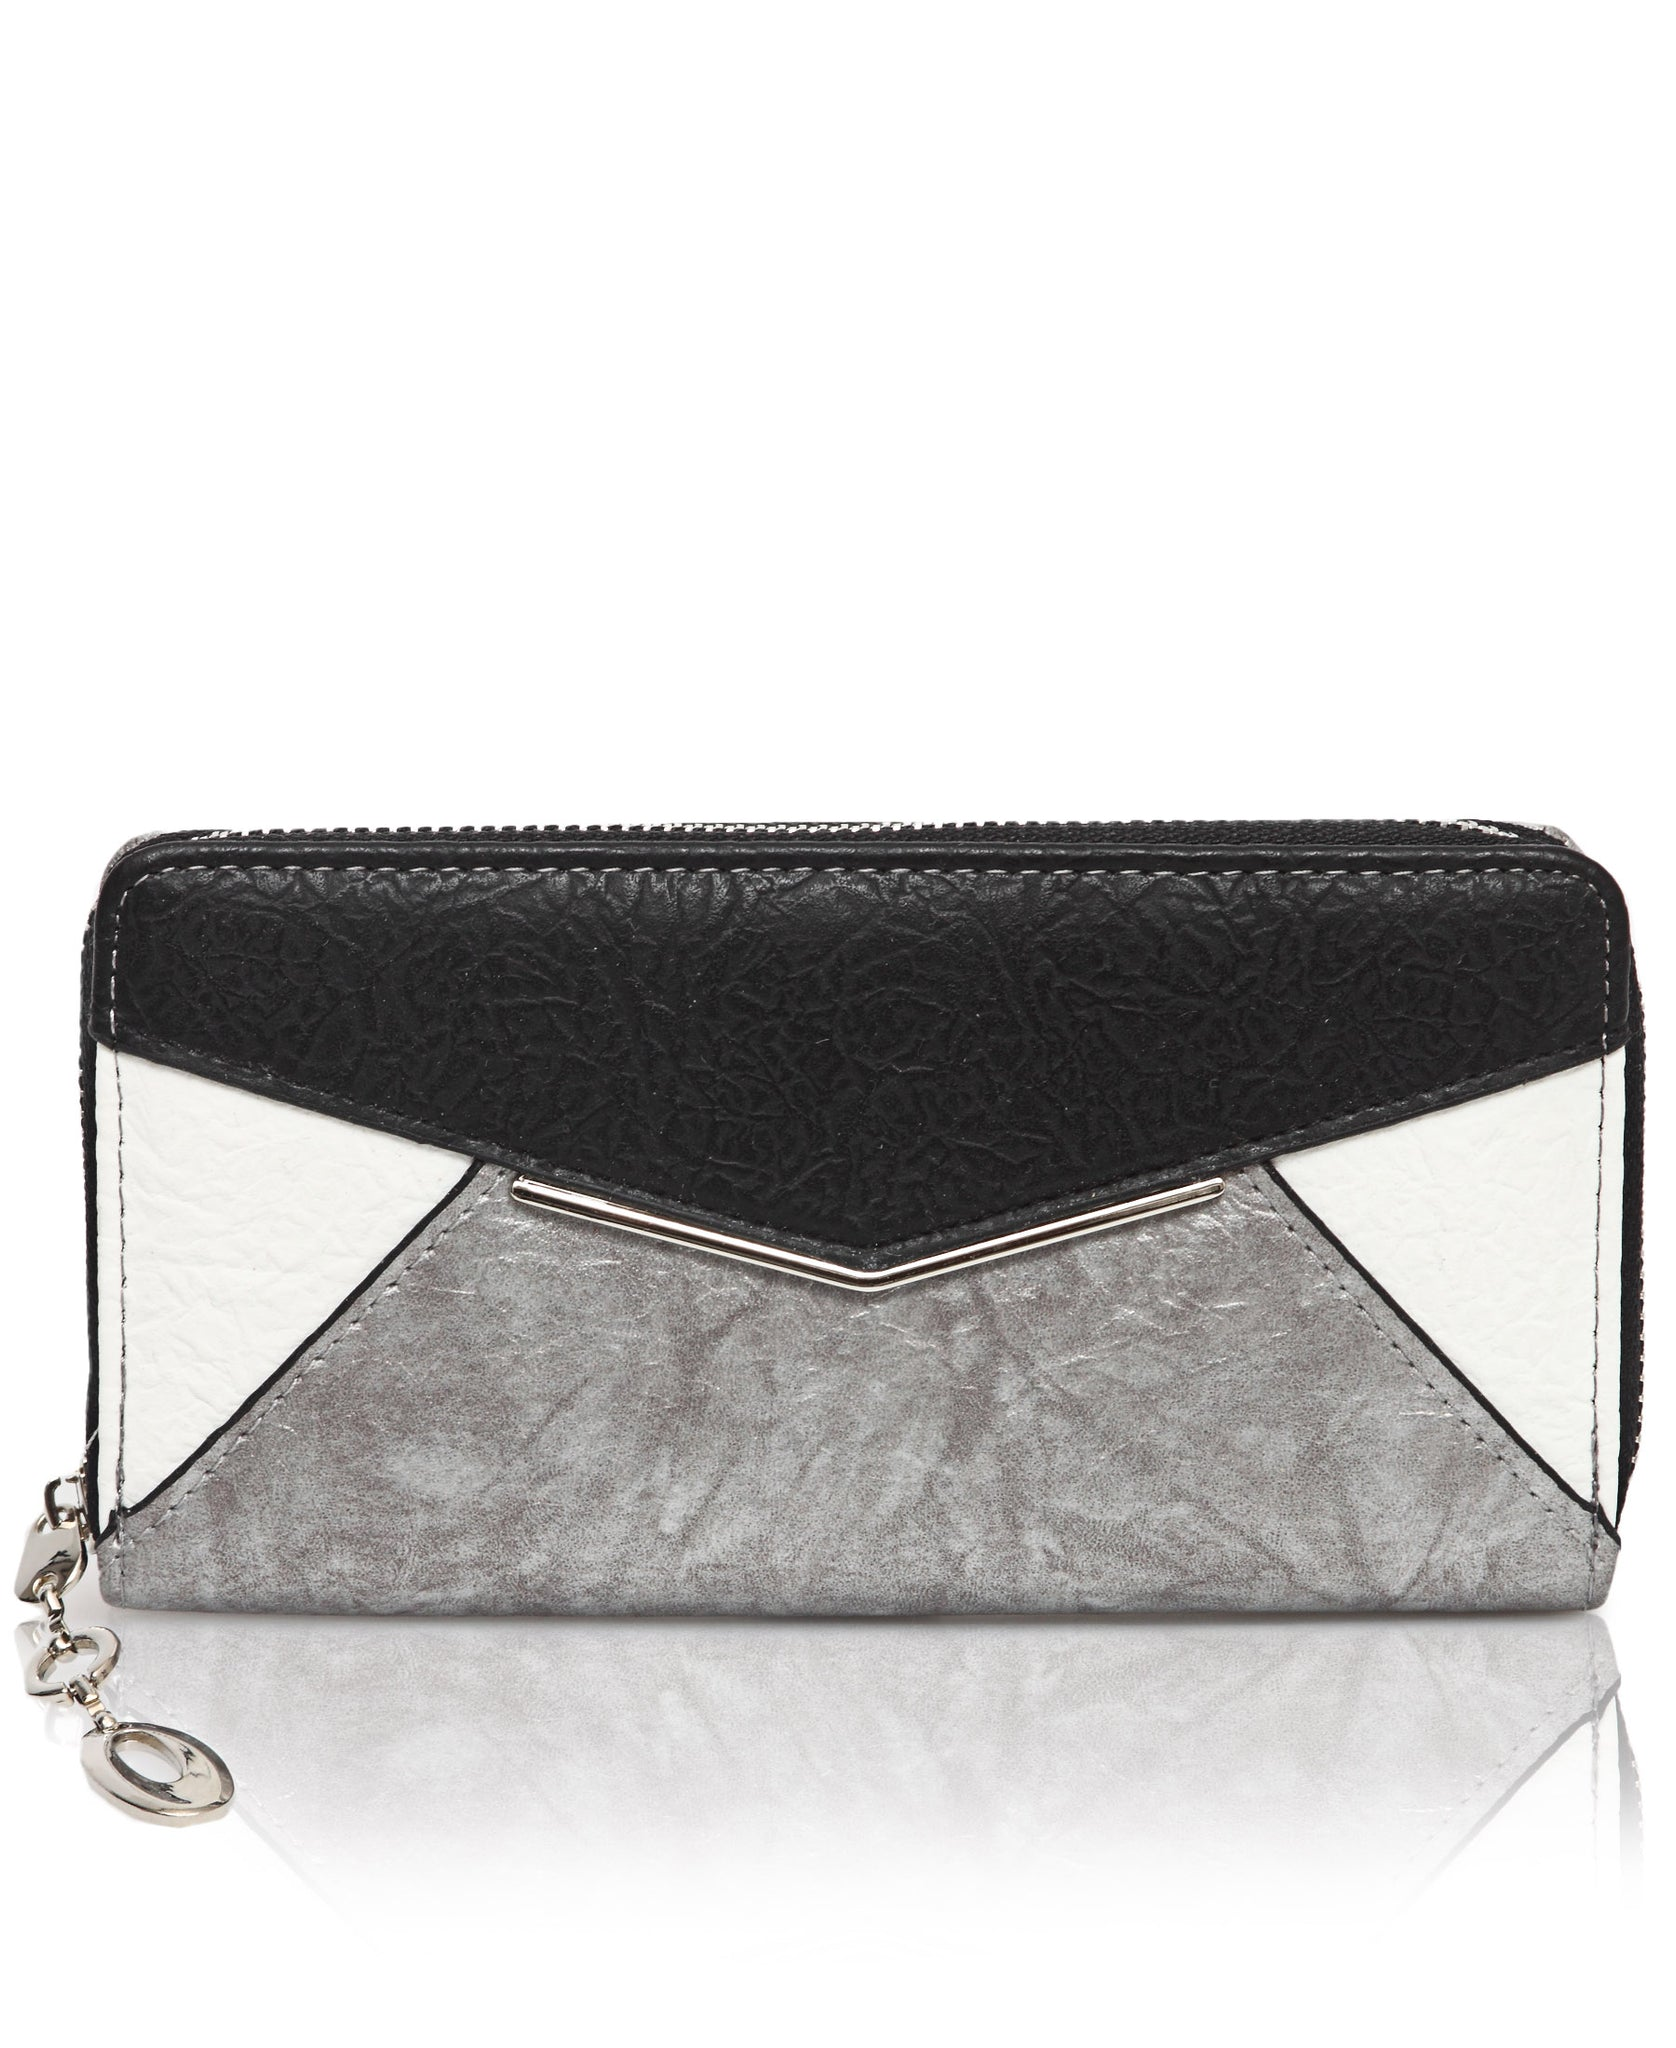 Zip Around Wallet - Silver